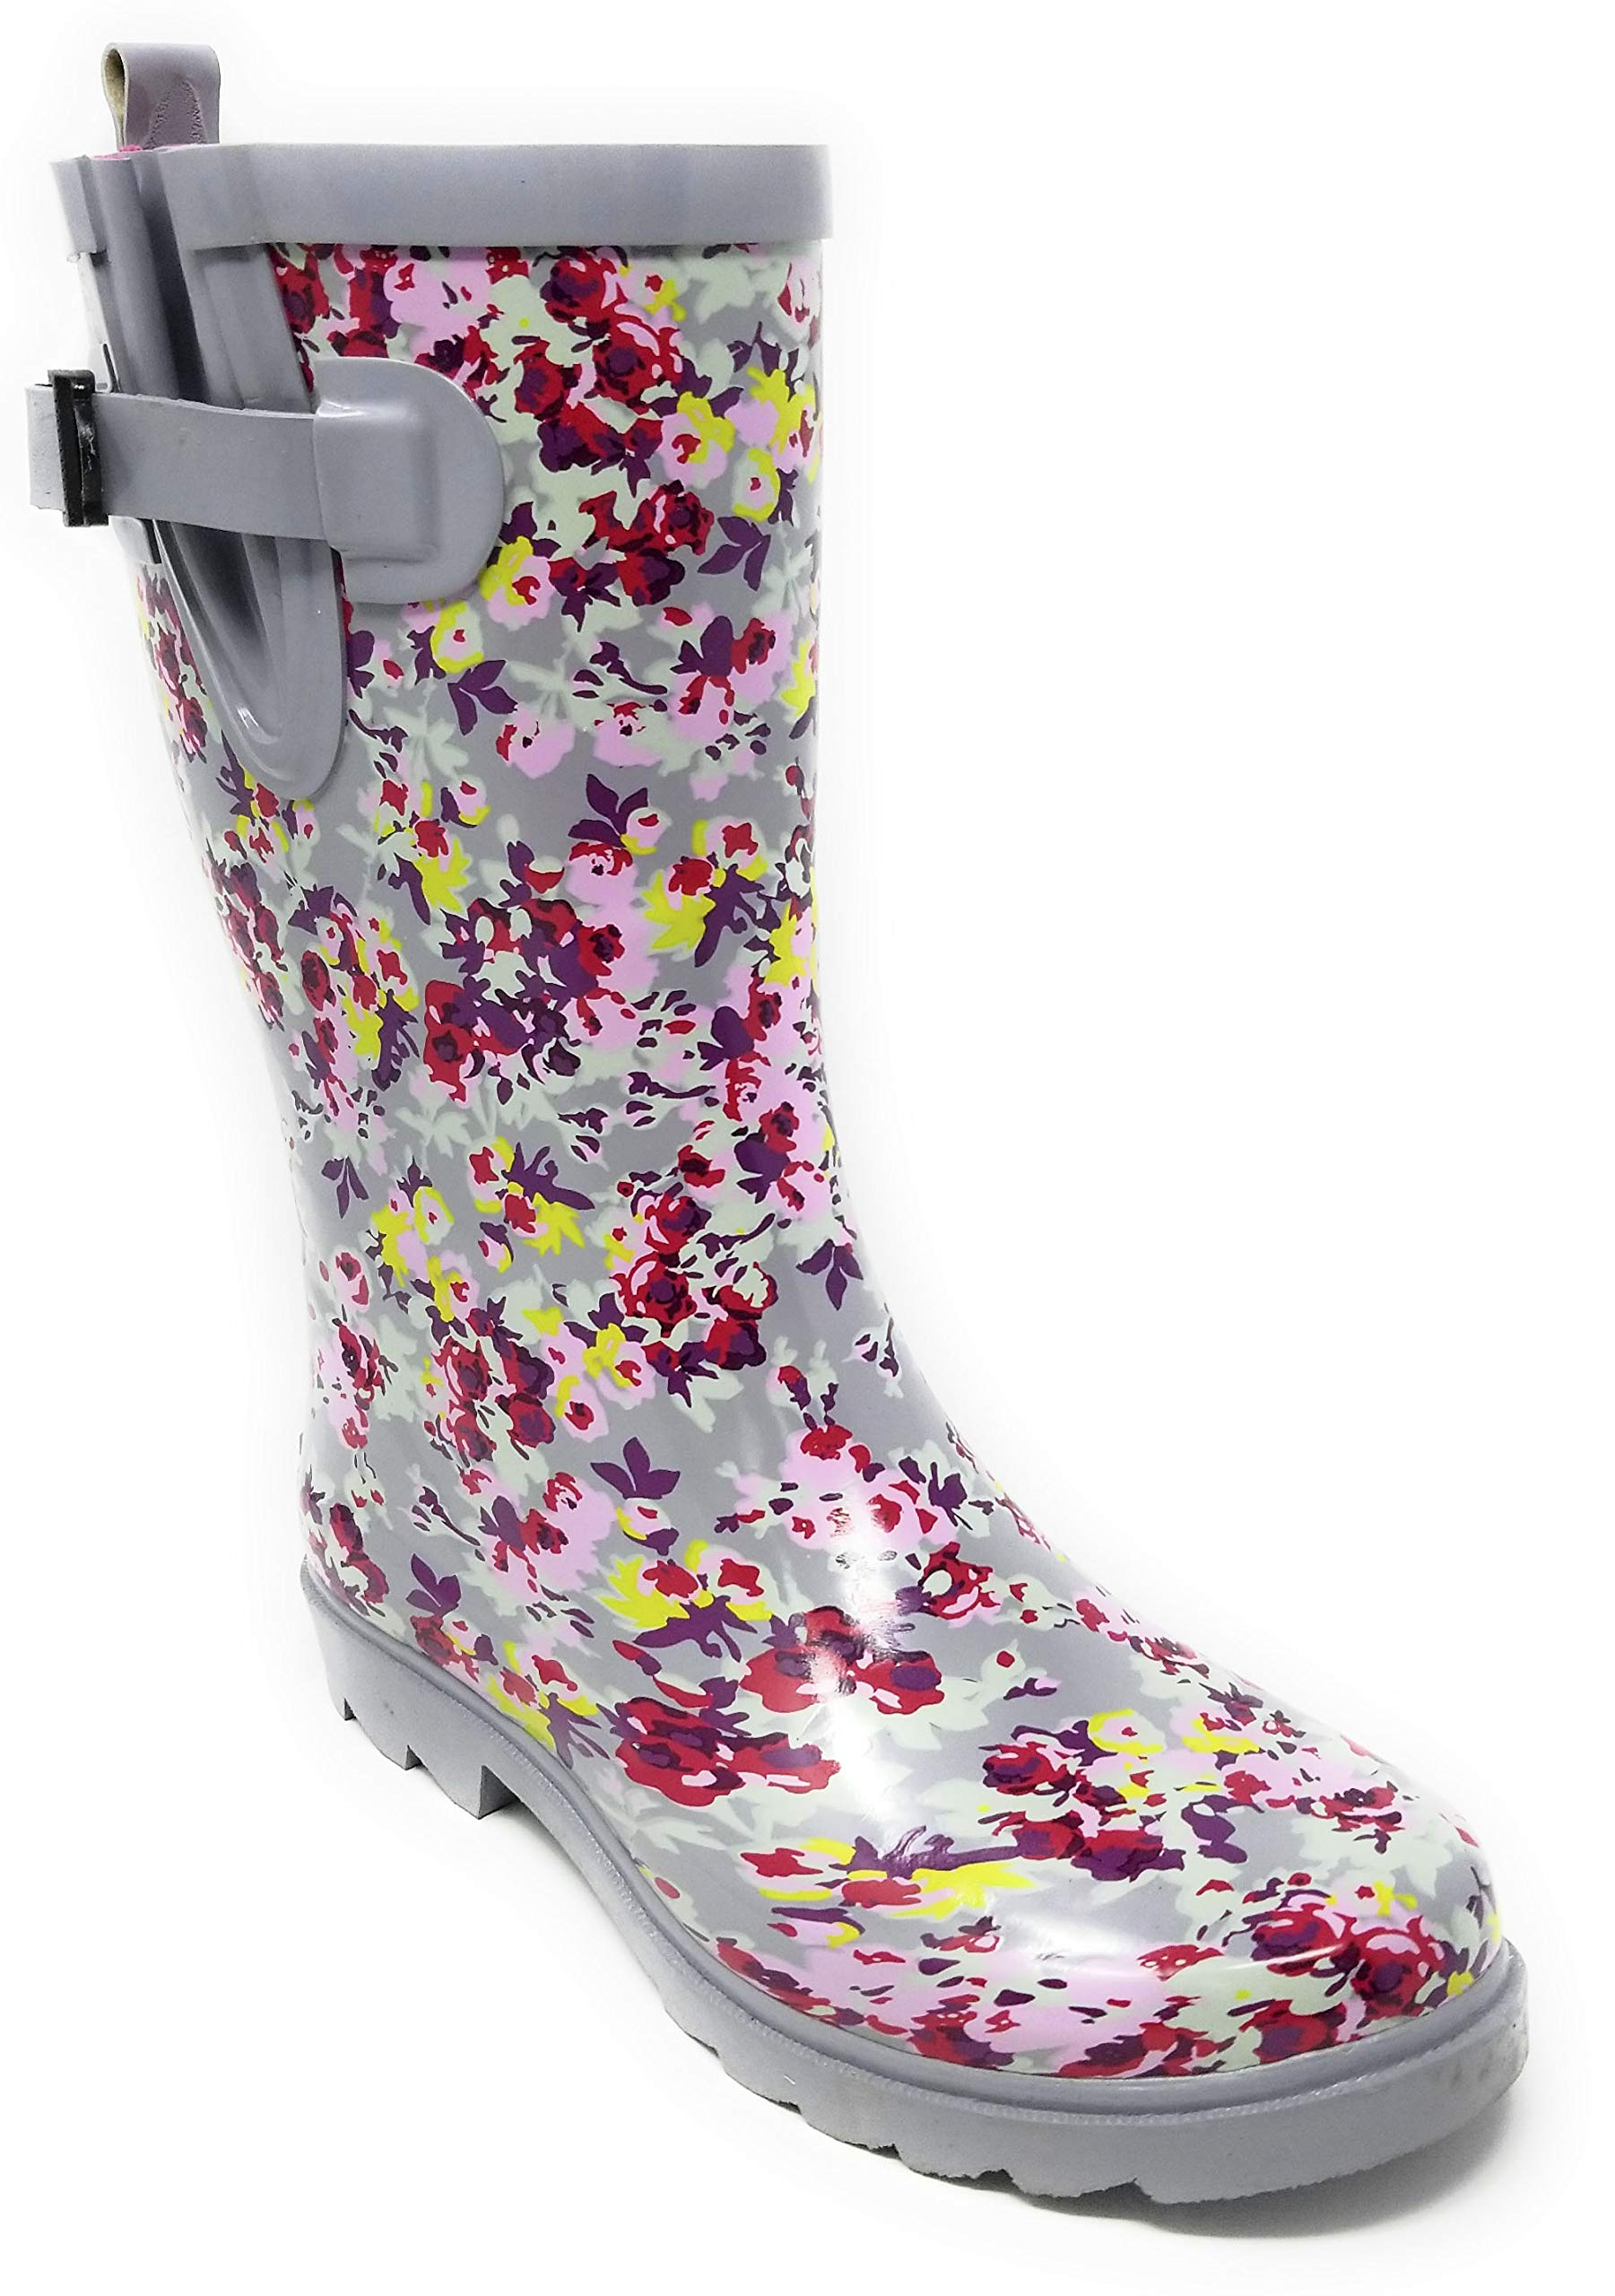 Forever Young Women Rubber Rain Boots Mid-Calf 11'' Classic Waterproof Cherry Bloom Designs Wellies,9